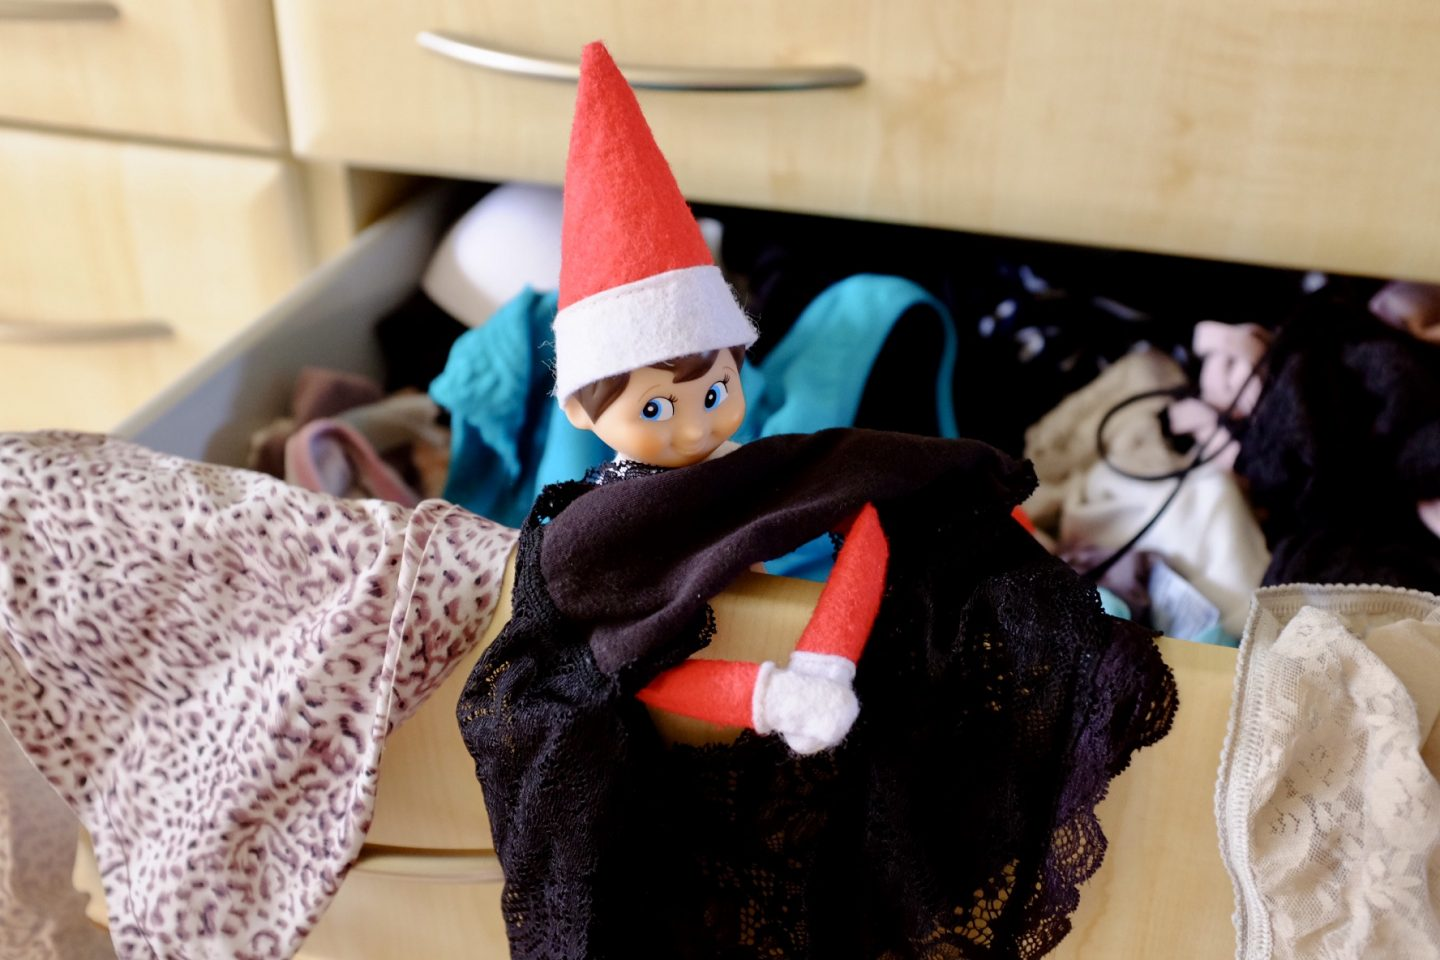 Elf on the shelf in a pant drawer - naughty elf on the shelf ideas